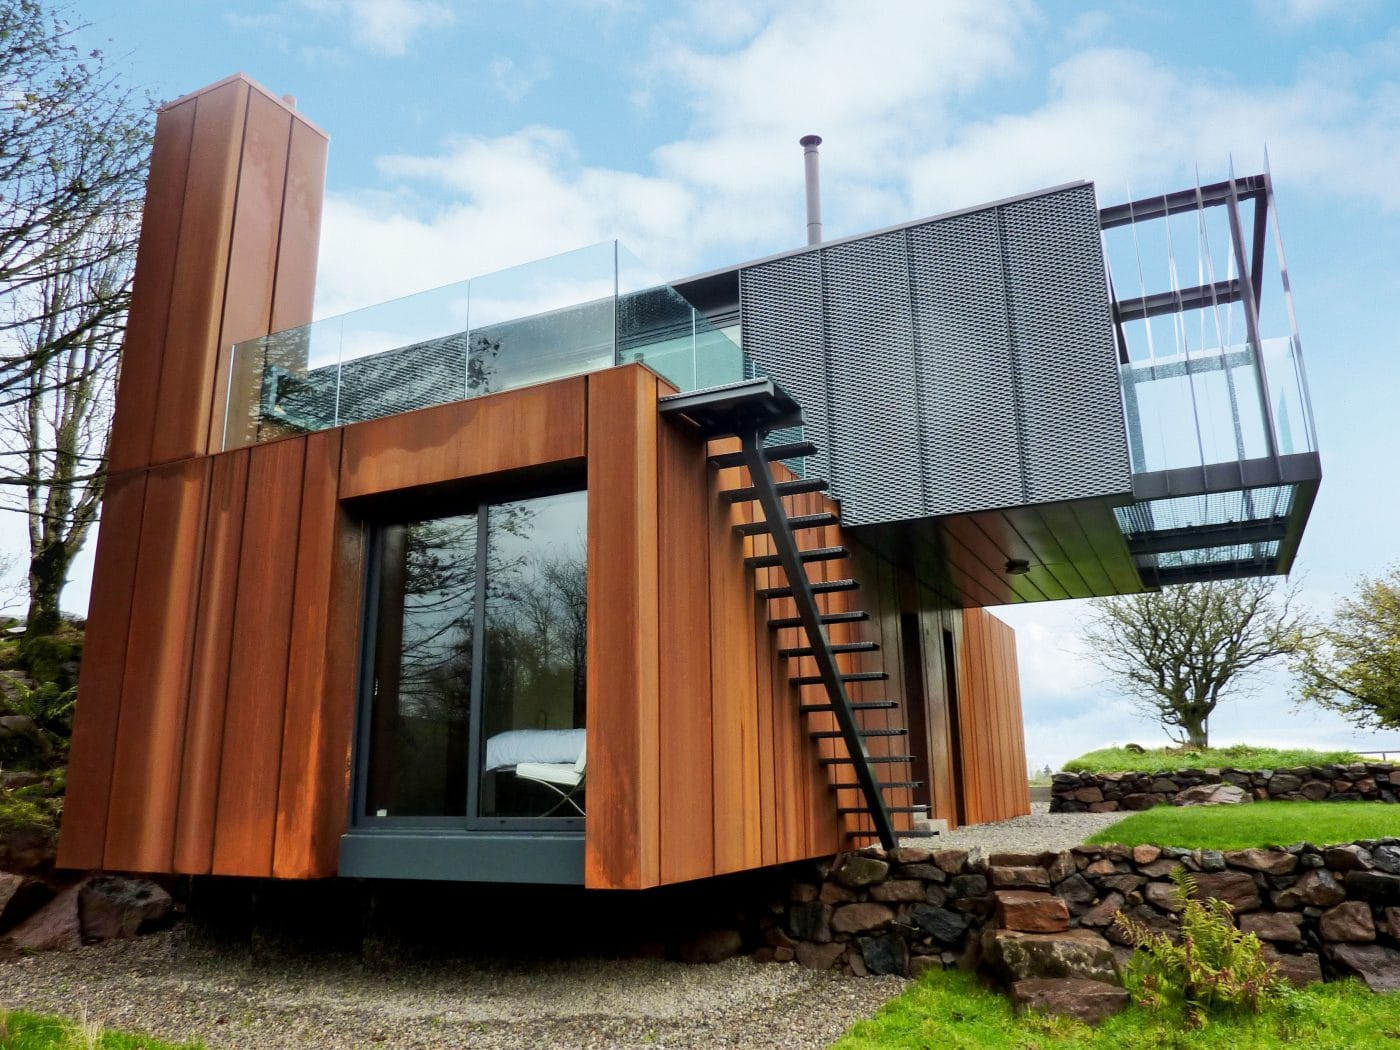 Grand designs shipping container home by patrick bradley for Design of building house